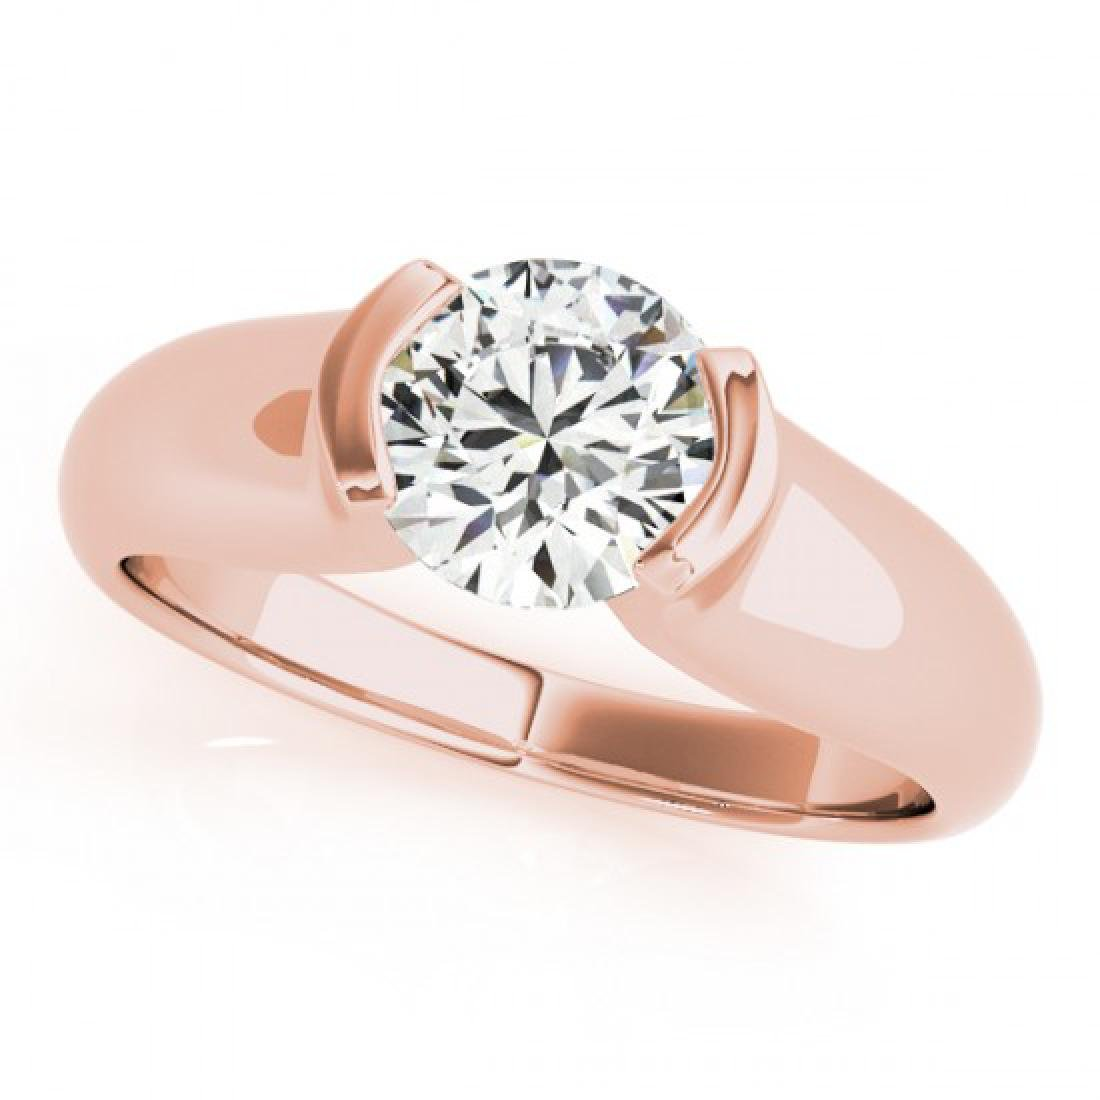 0.5 CTW Certified VS/SI Diamond Solitaire Ring 14K Rose - 2